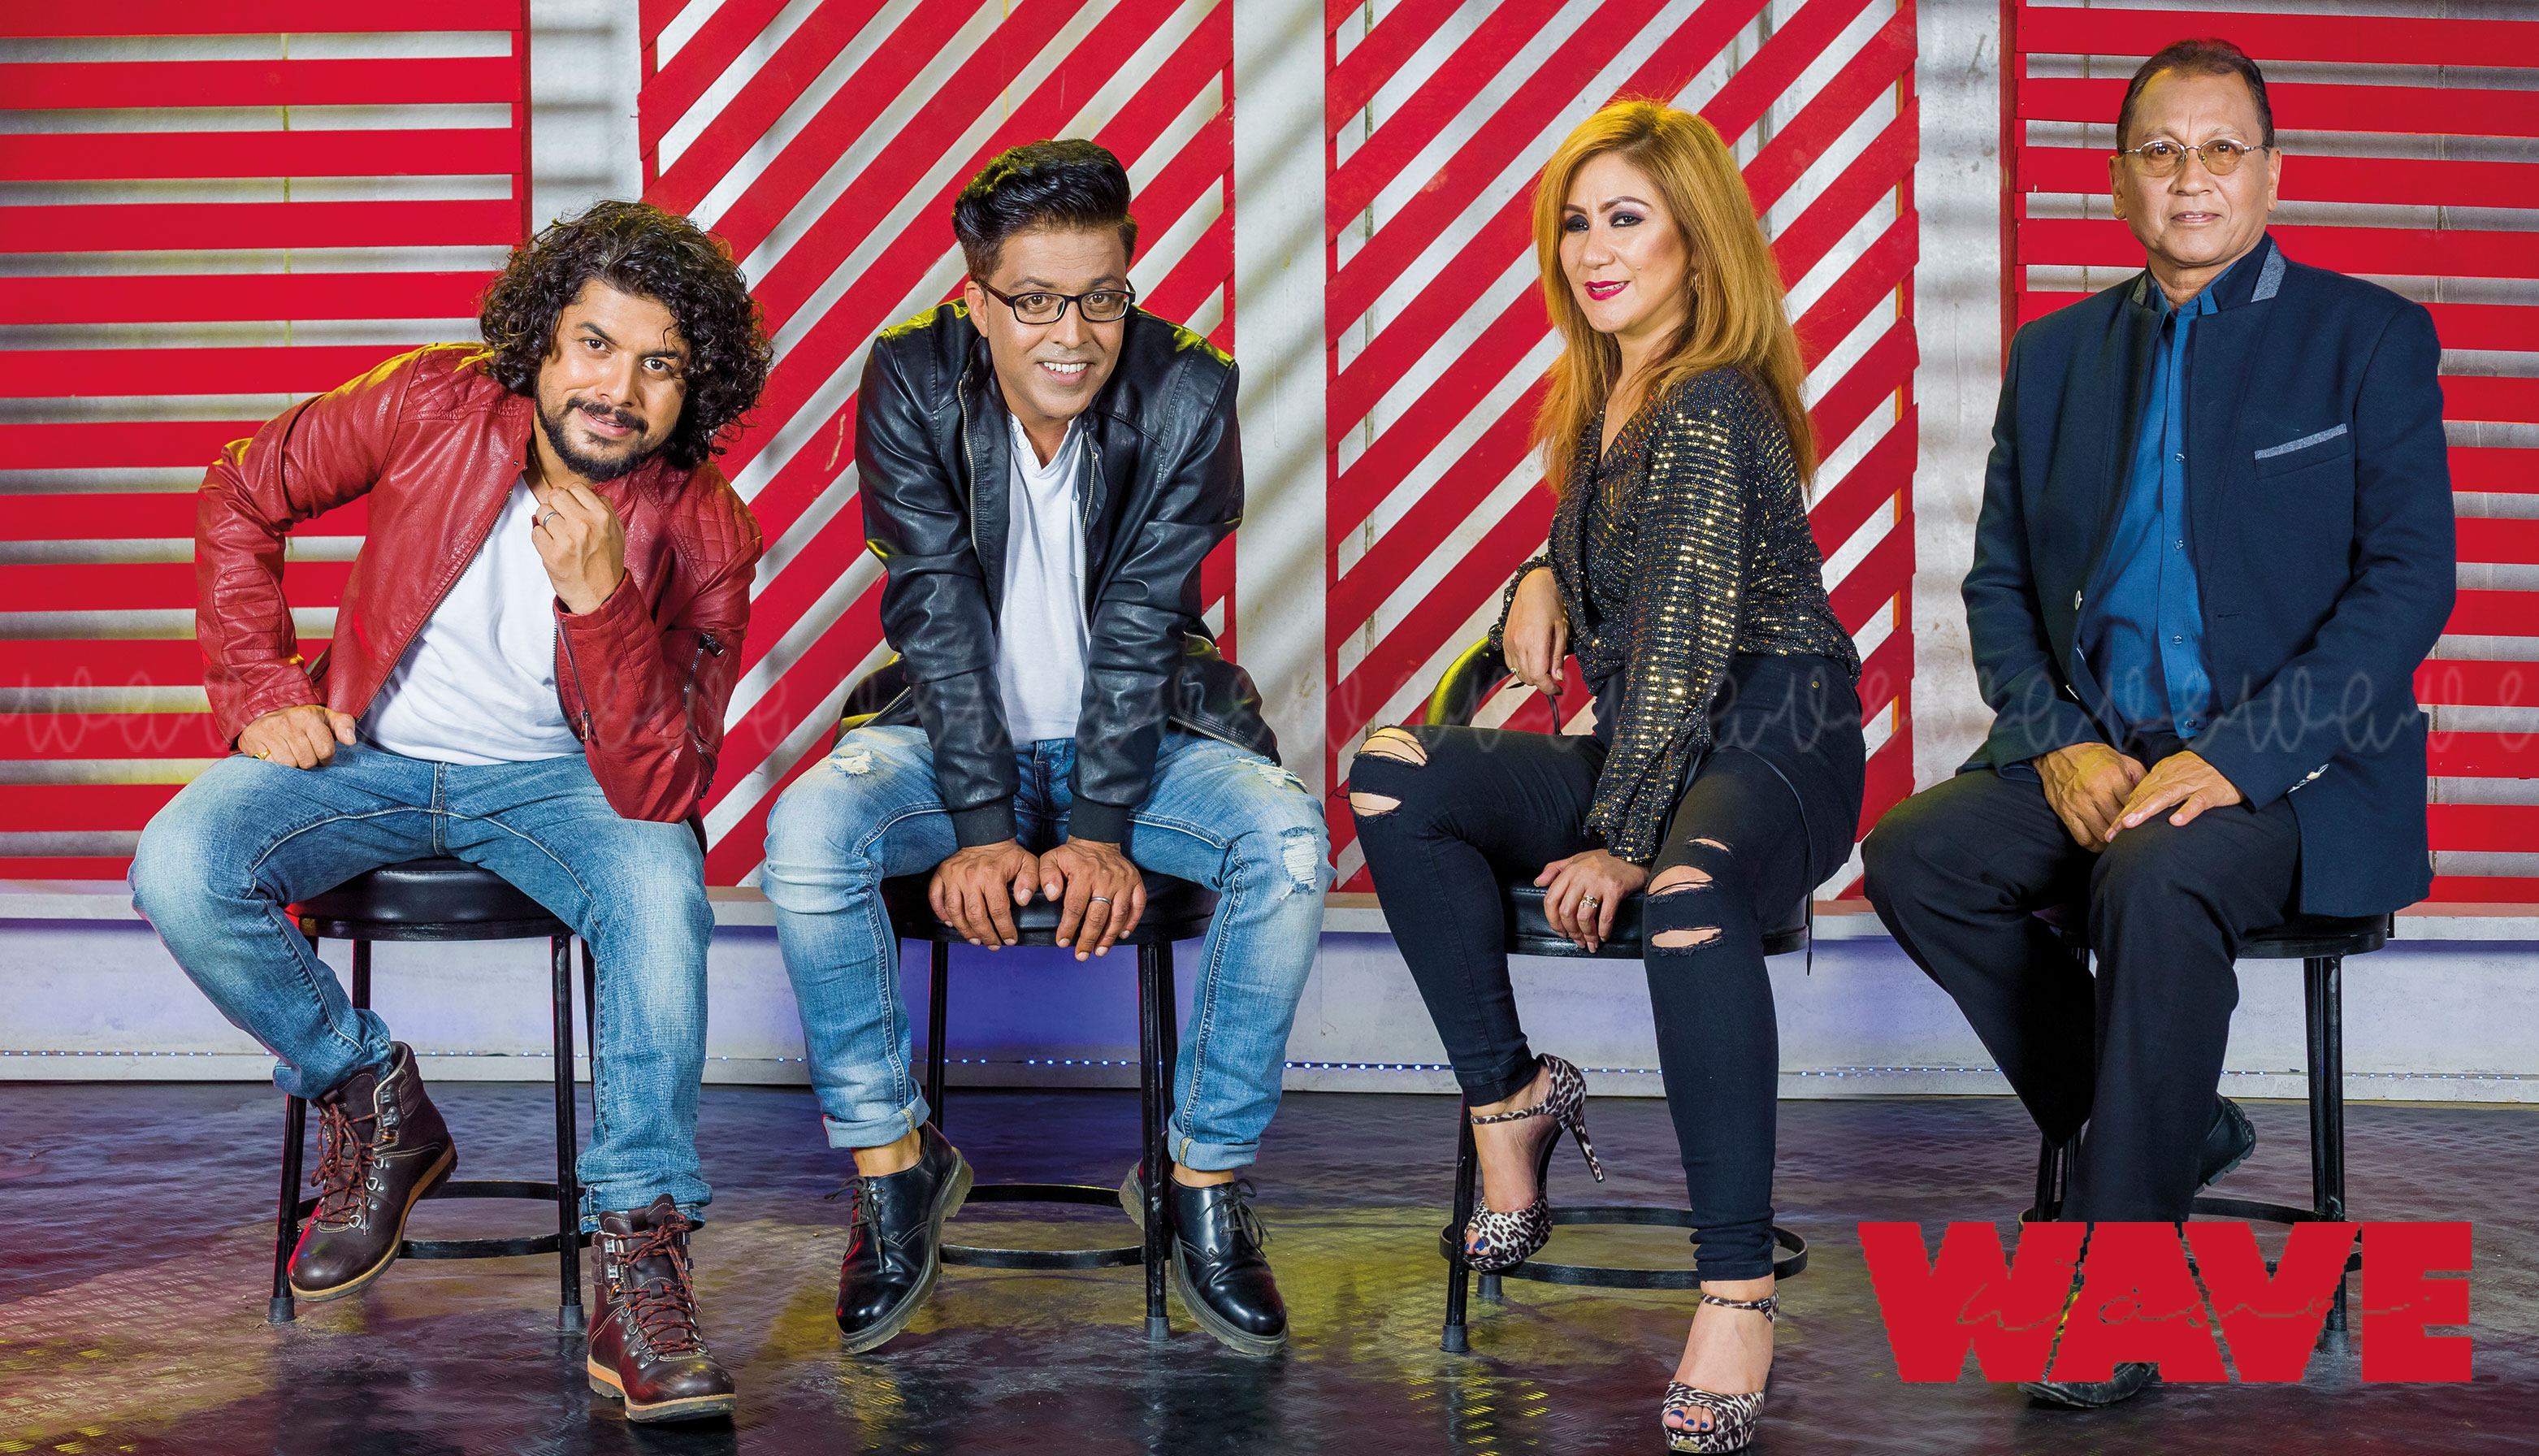 Abhaya Subba Sanup Paudel Deep Shrestha Pramod Kharel As Coach In The Voice of Nepal